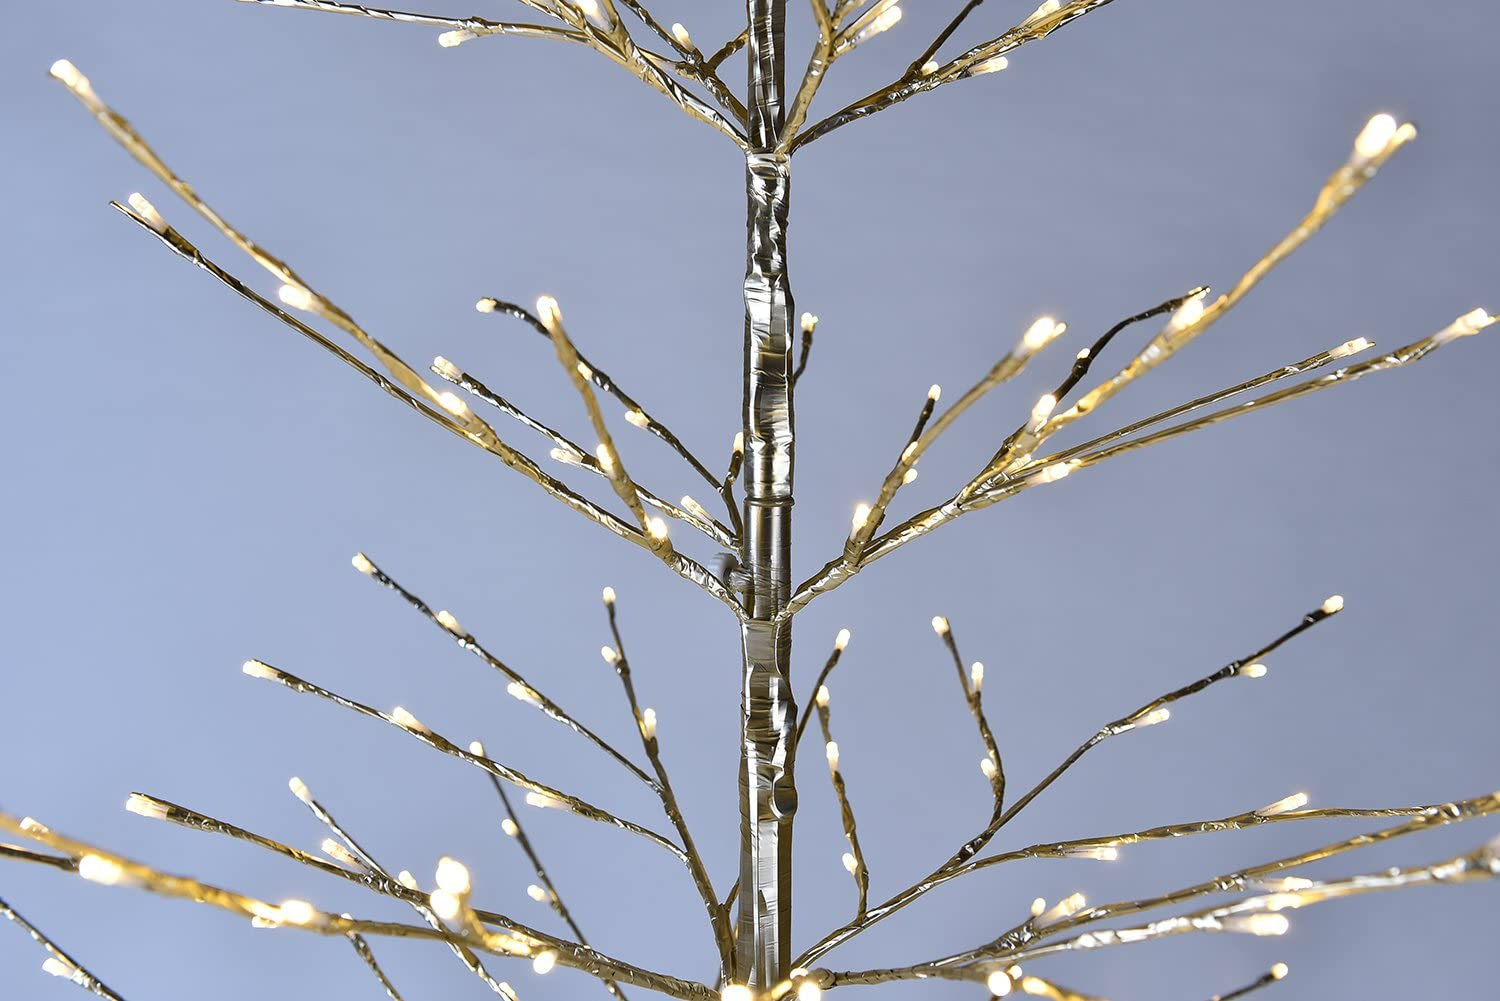 Lightshare 7 ft Golden Northern Lights Starlit Tree with 308 Warm White LED Lights 7 Feet LED Tree Champagne Gold Non-troditional Christmas Tree for Holiday Dռcor Wedding Party